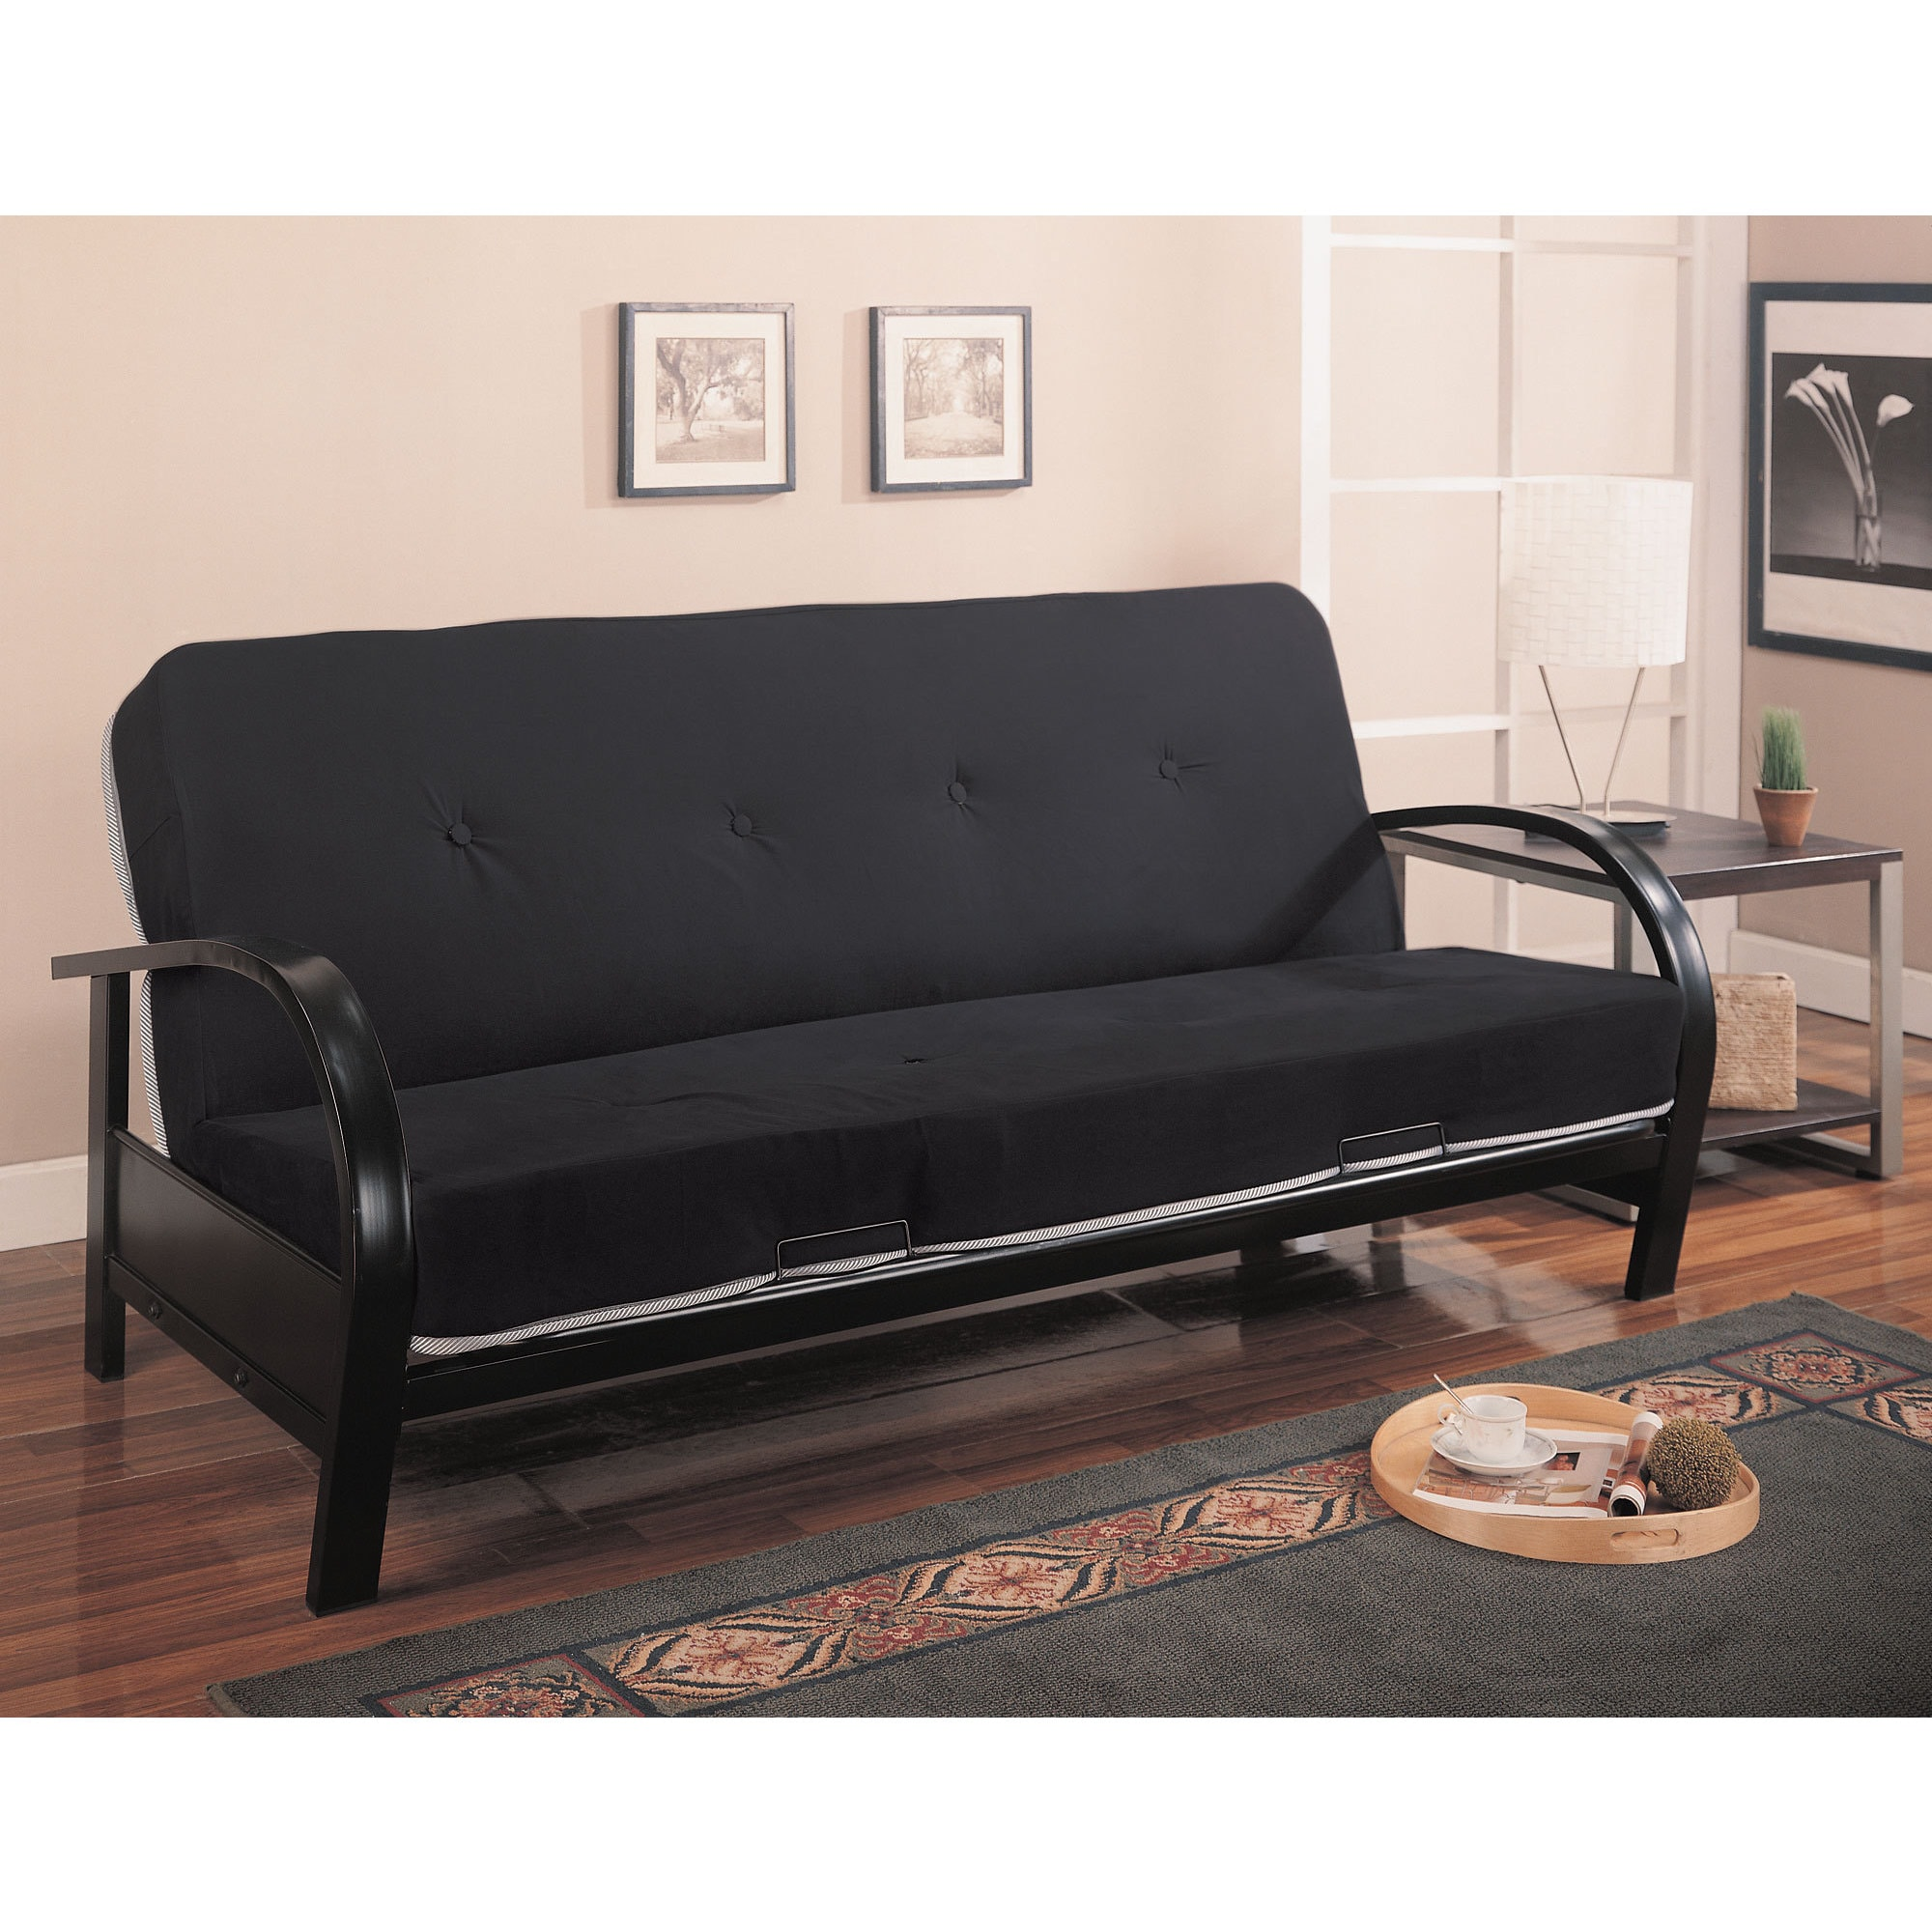 Coaster Company Black Metal Futon Frame Free Shipping Today Com 12185816